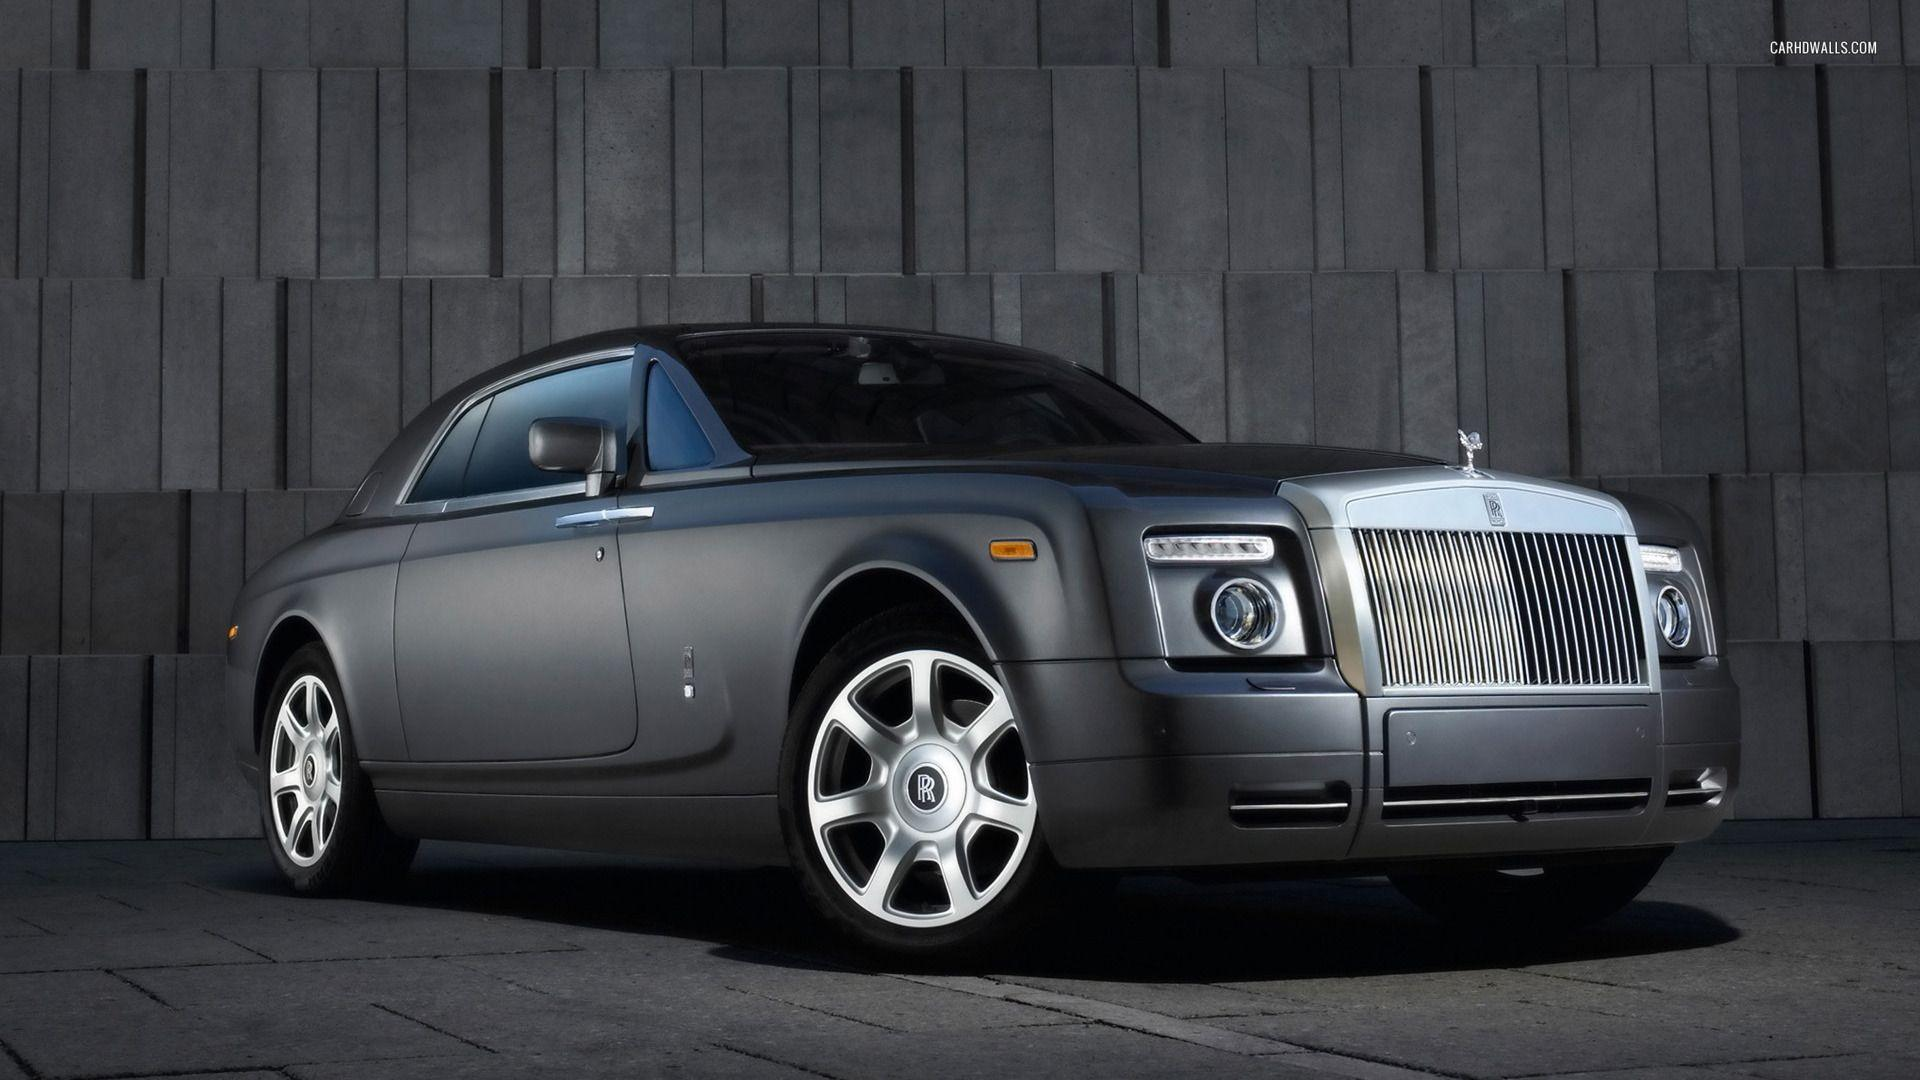 Rolls Royce Phantom Wallpapers 114